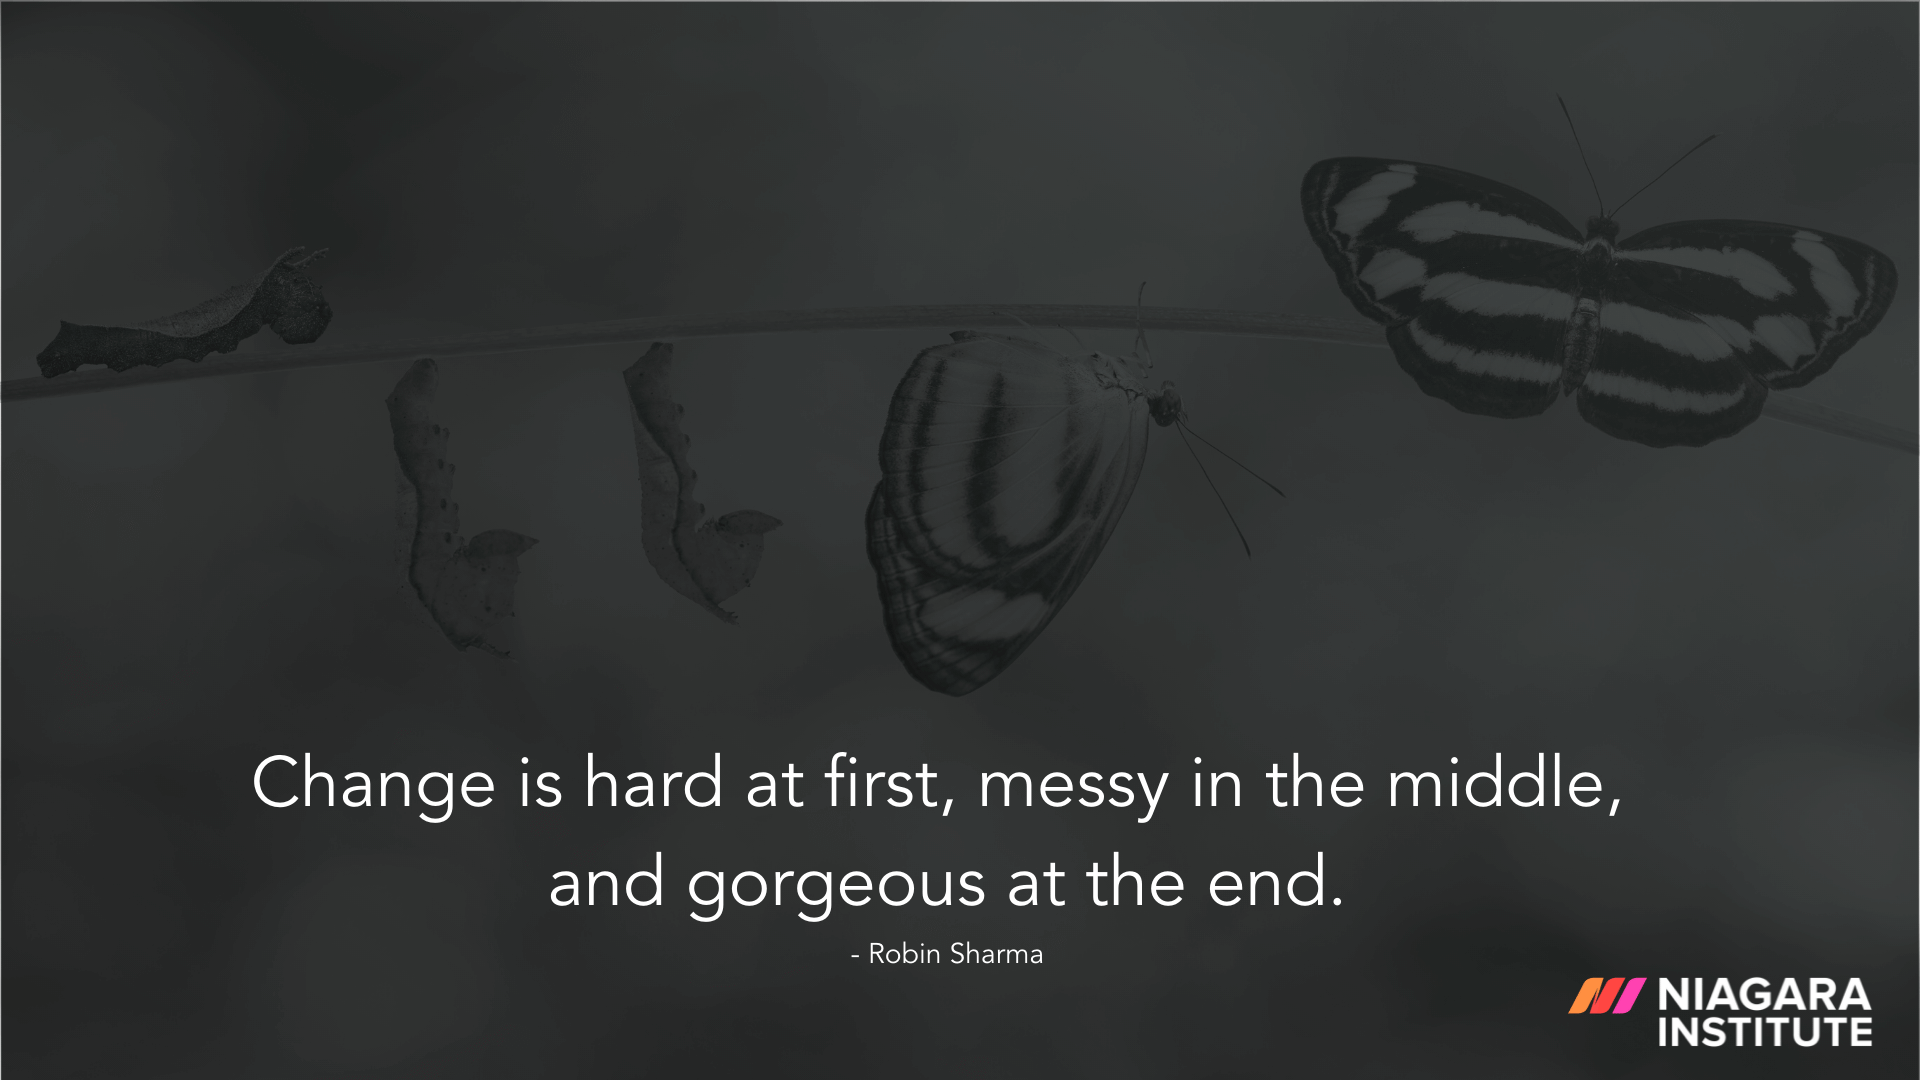 Change is hard at first, messy in the middle, and gorgeous at the end - Robin Sharma